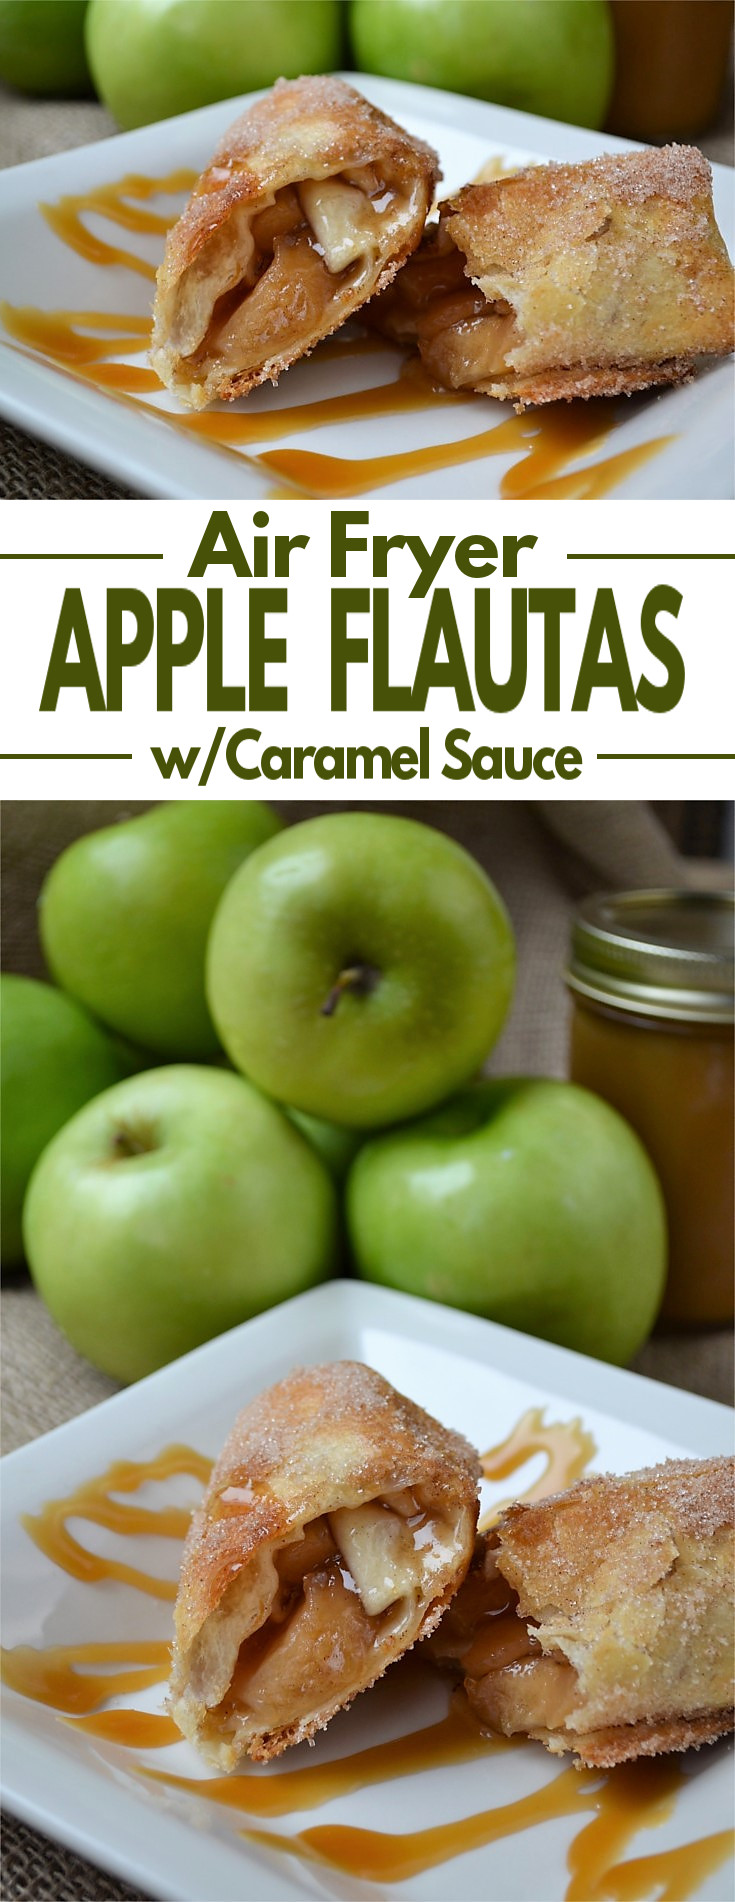 Simple Apple Pie Flautas Recipe - Tender apple slices and sweet cinnamon wrapped in a flour tortilla, fried to crispy perfection in an air fryer and then drizzled with a delicious homemade caramel sauce.